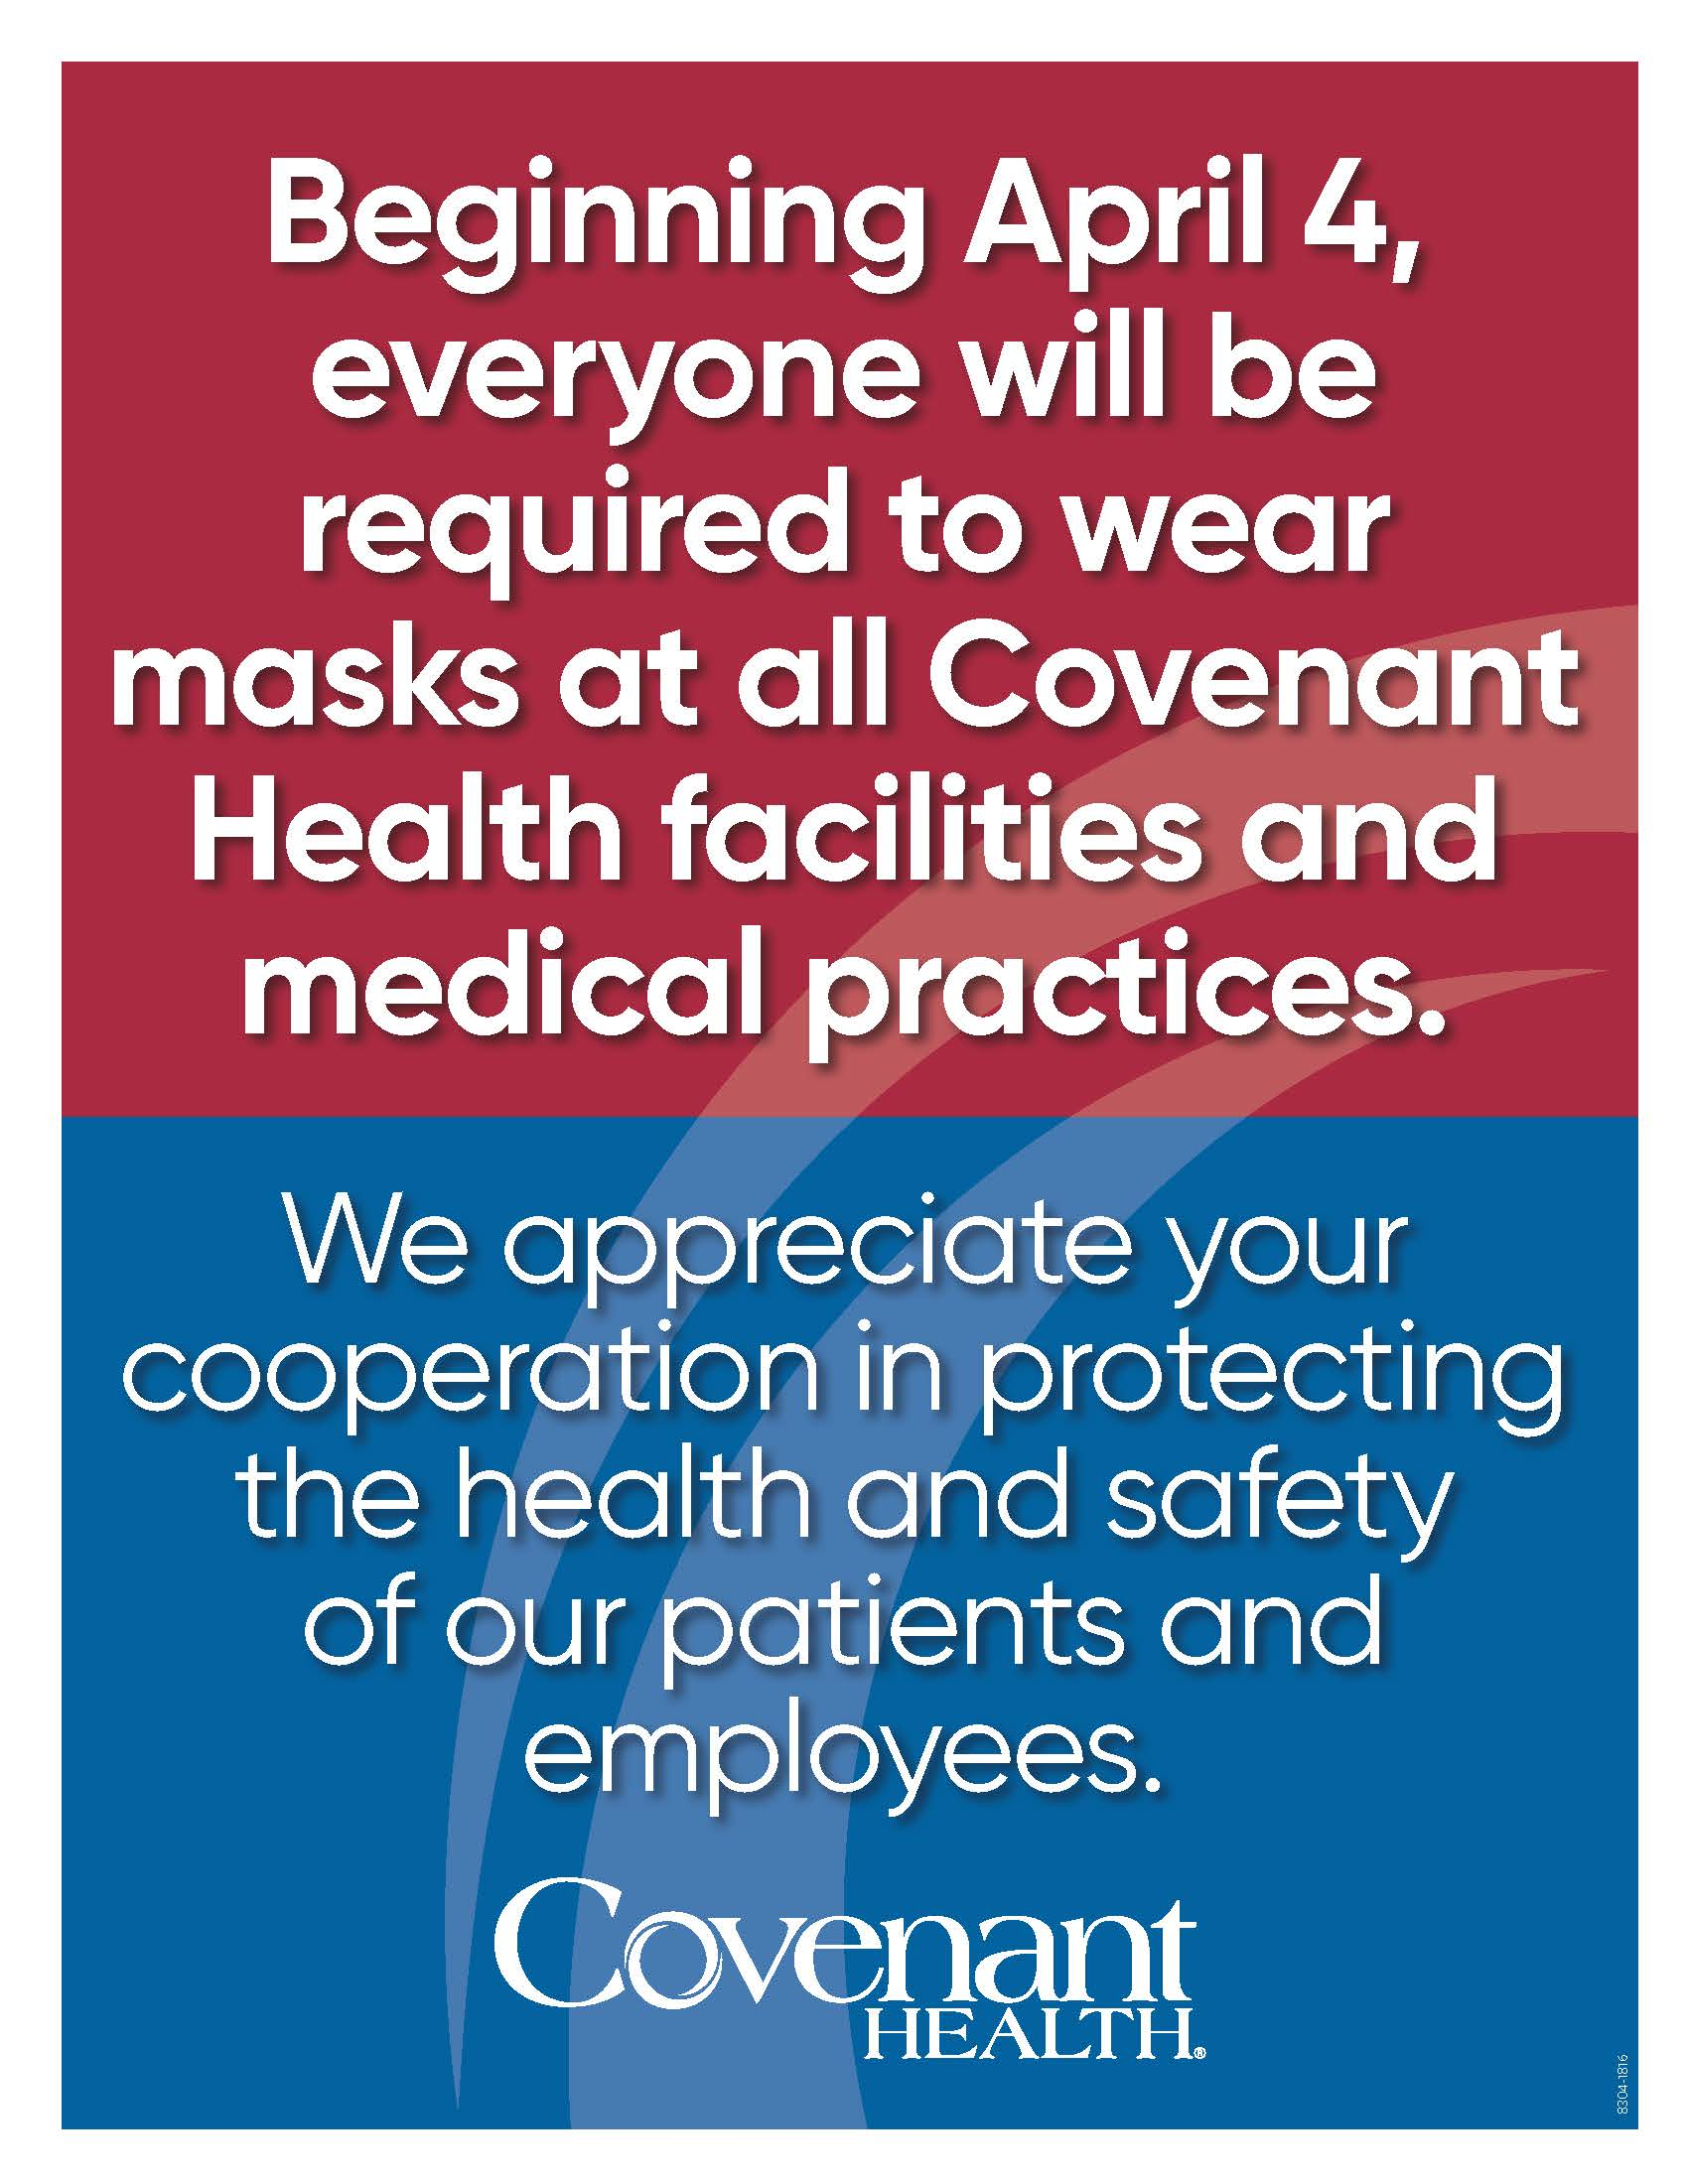 Beginning April 4, everyone will be required to wear masks at all Covenant Health facilities and medical practices.